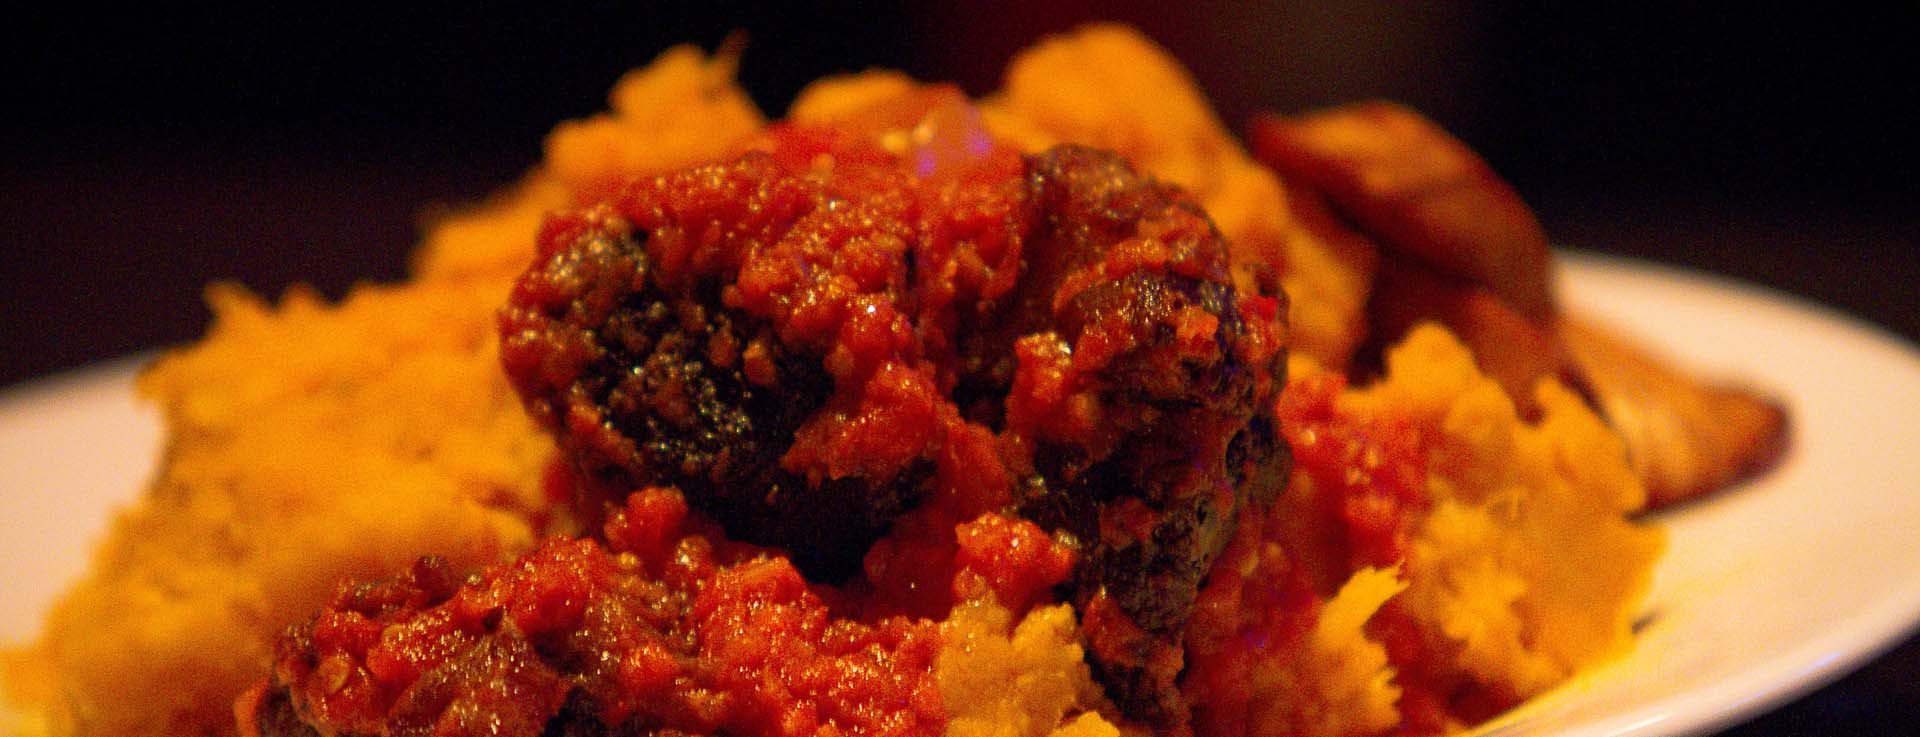 K's Spice African Restaurant Yam pottage image for home page